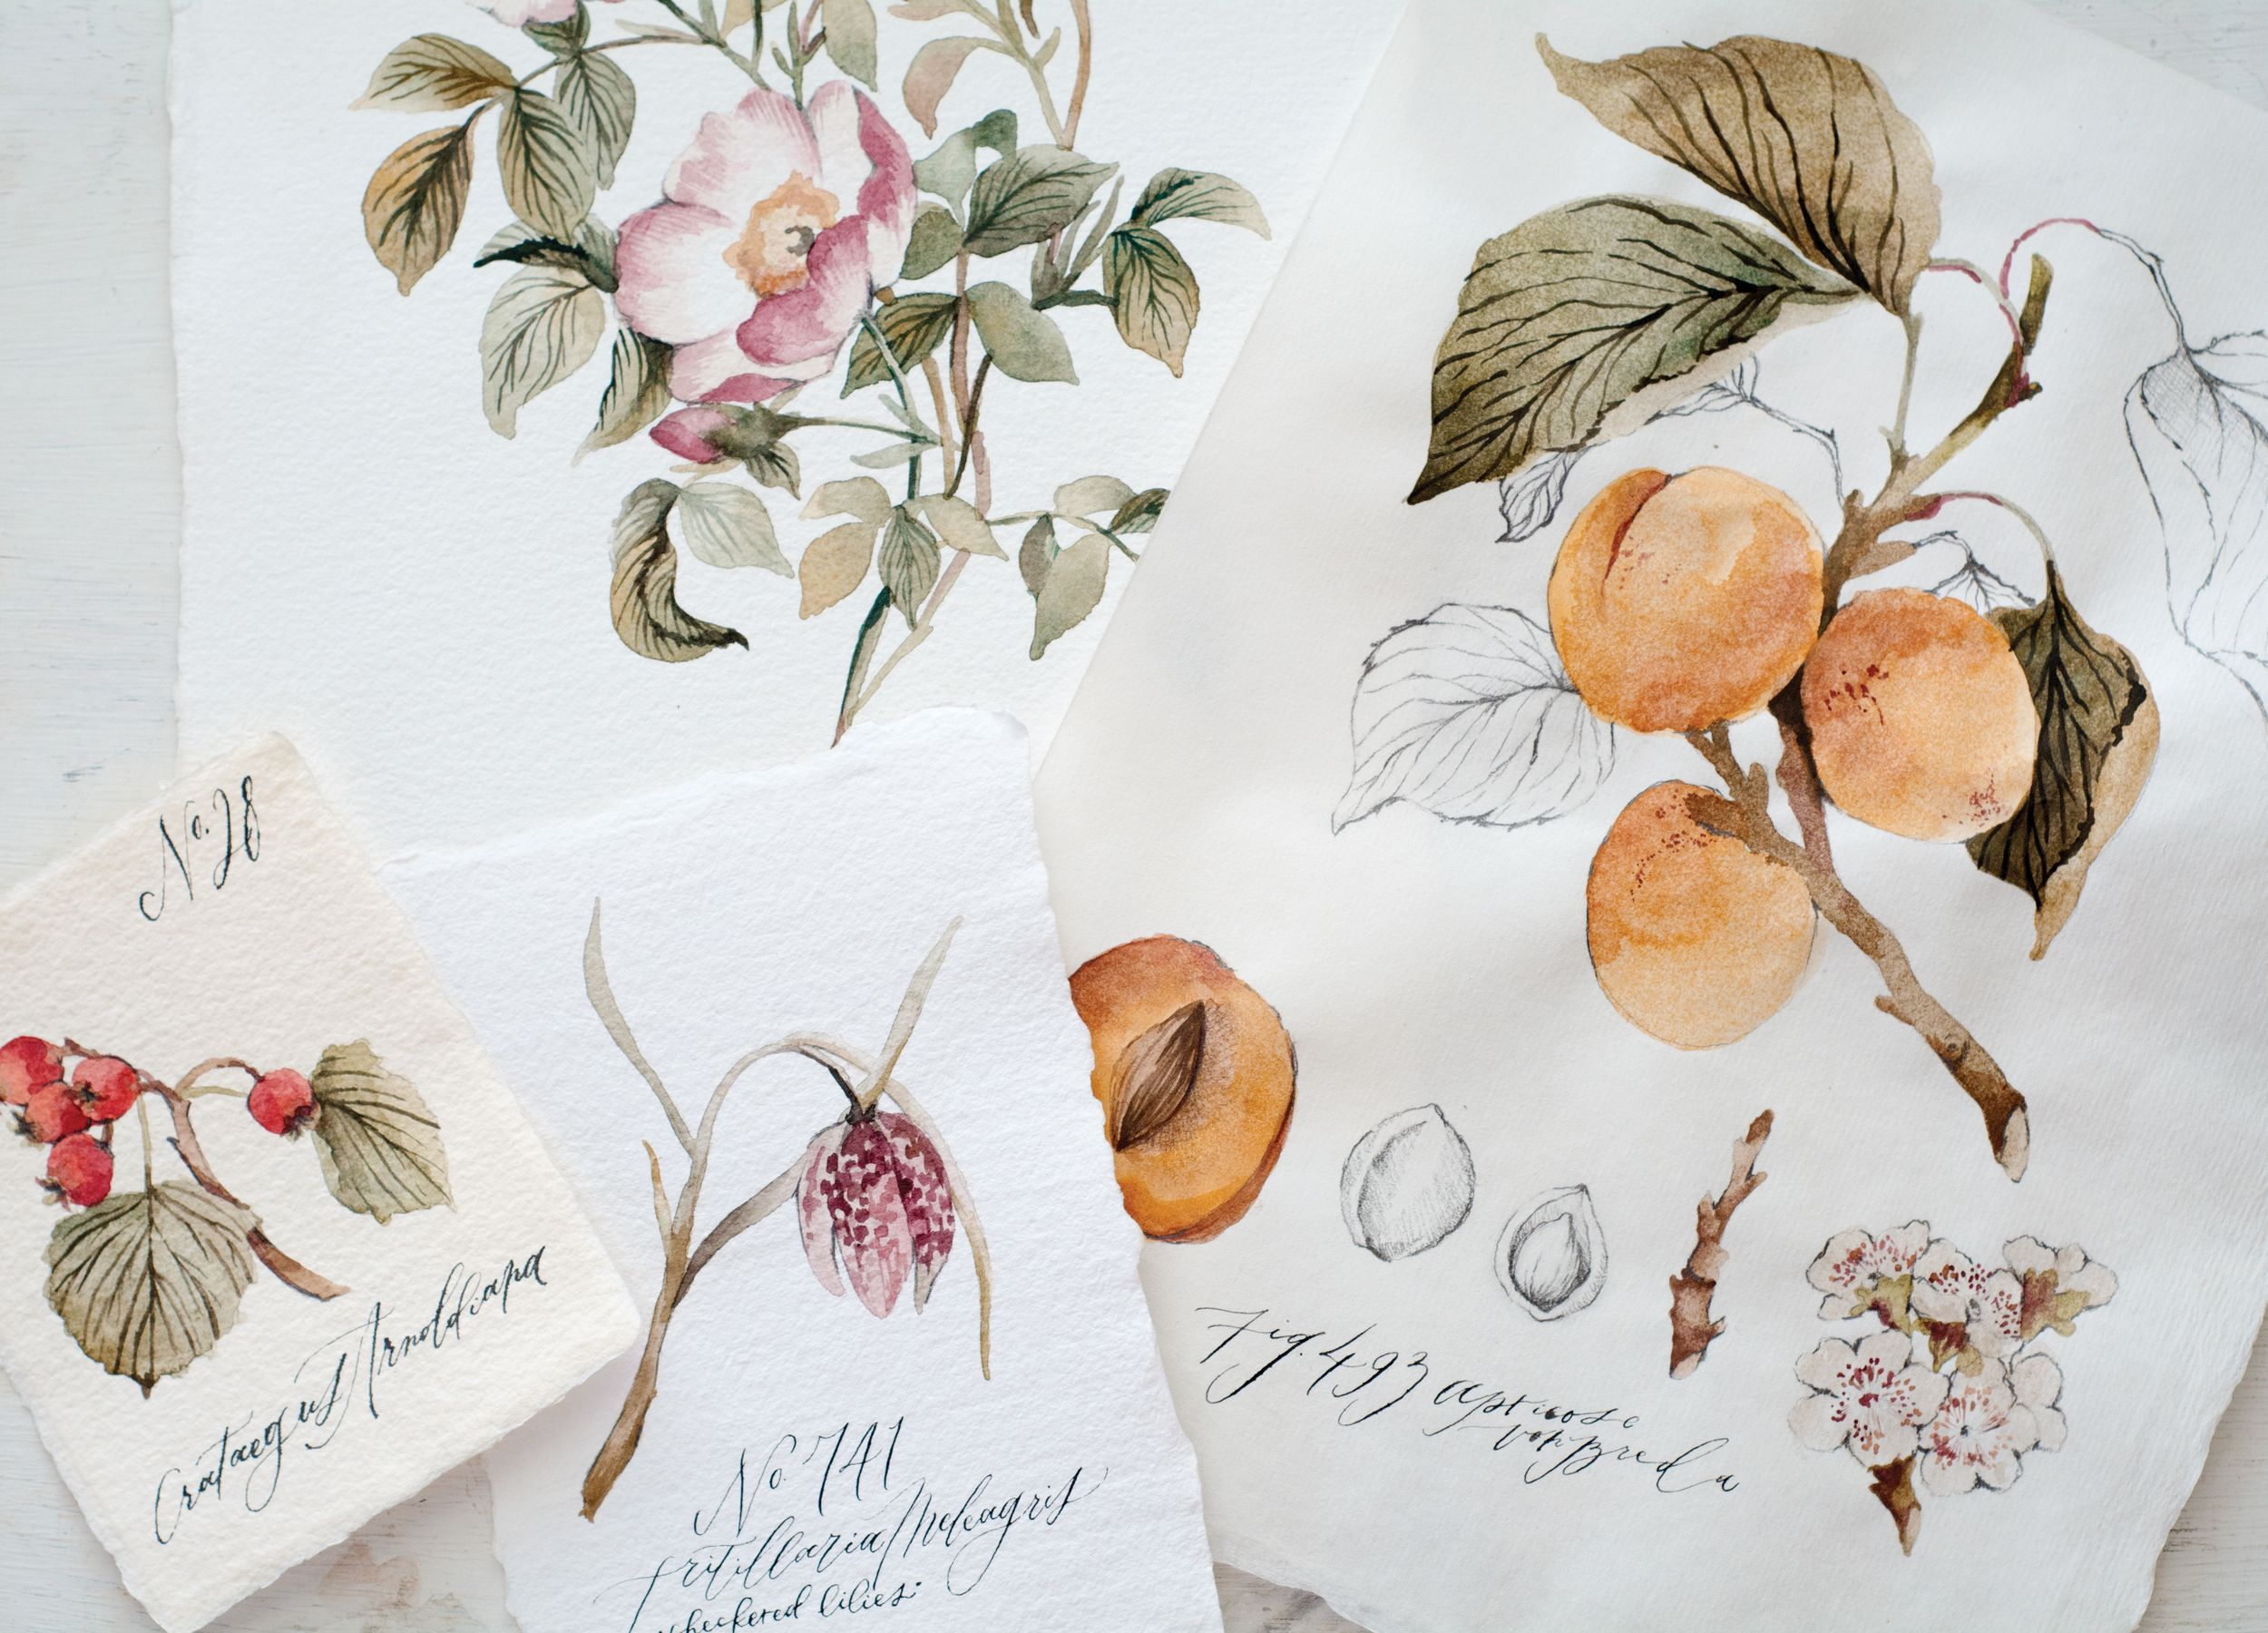 Wildfield Paper Co Watercolor Botanicals Botanical Illustration